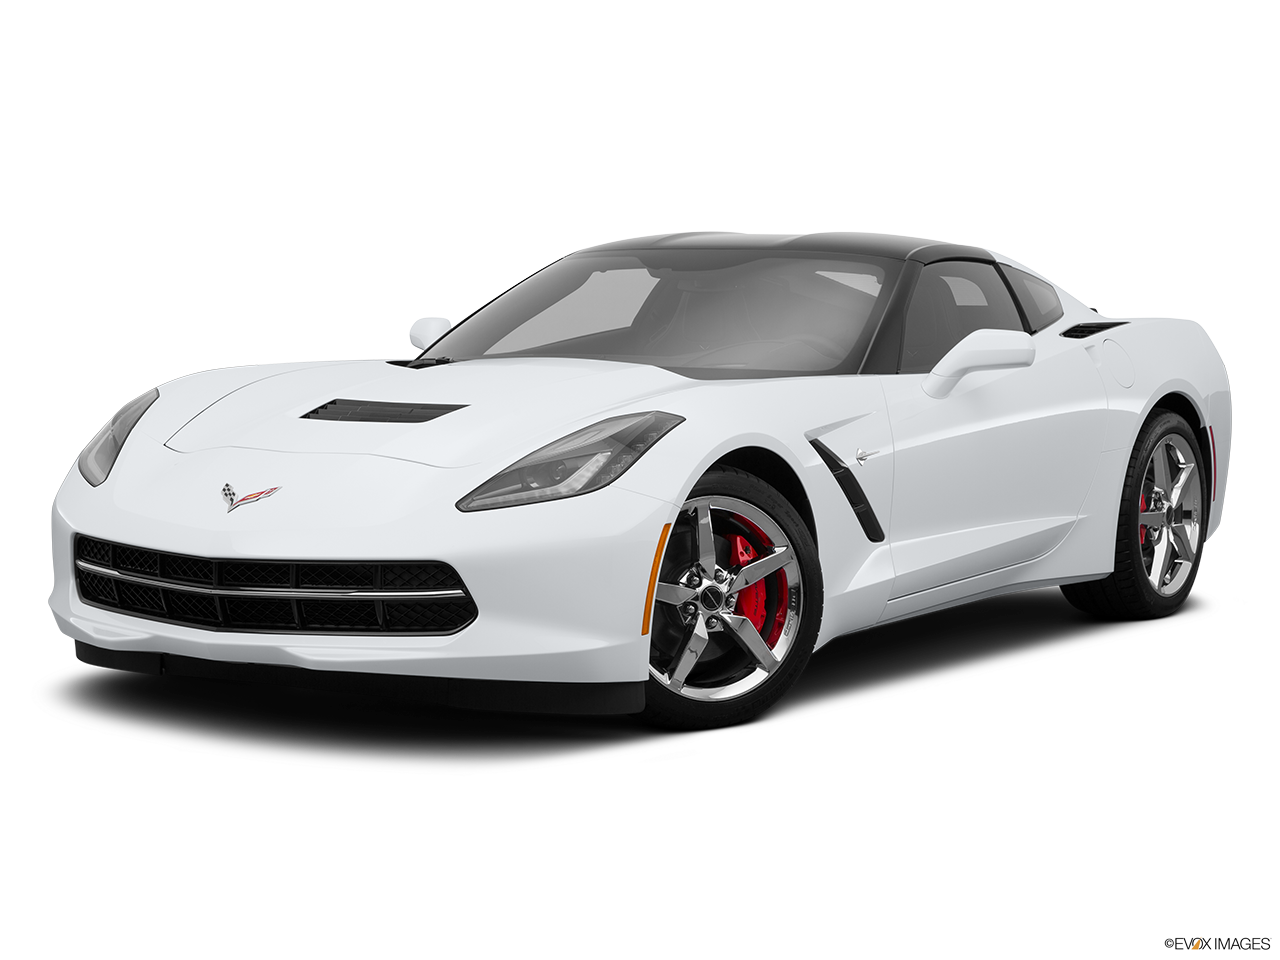 2015 Chevrolet Corvette Stingray Car Chevrolet Camaro.